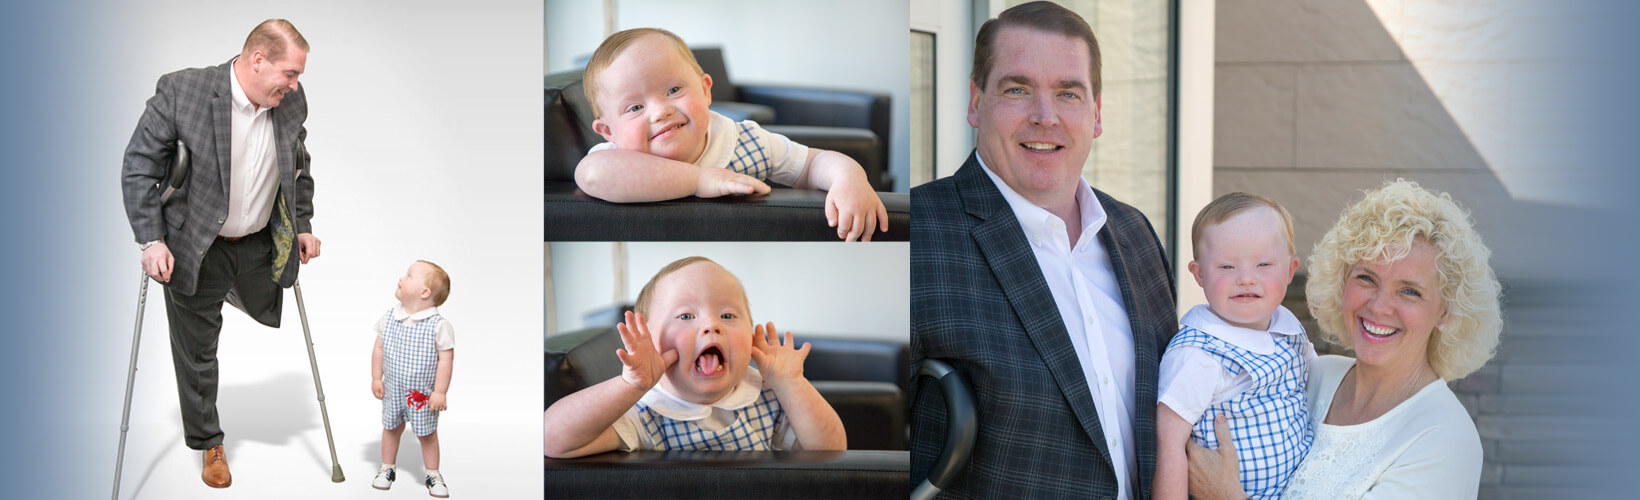 meet ceo tim moran family pictures - Meet Our CEO